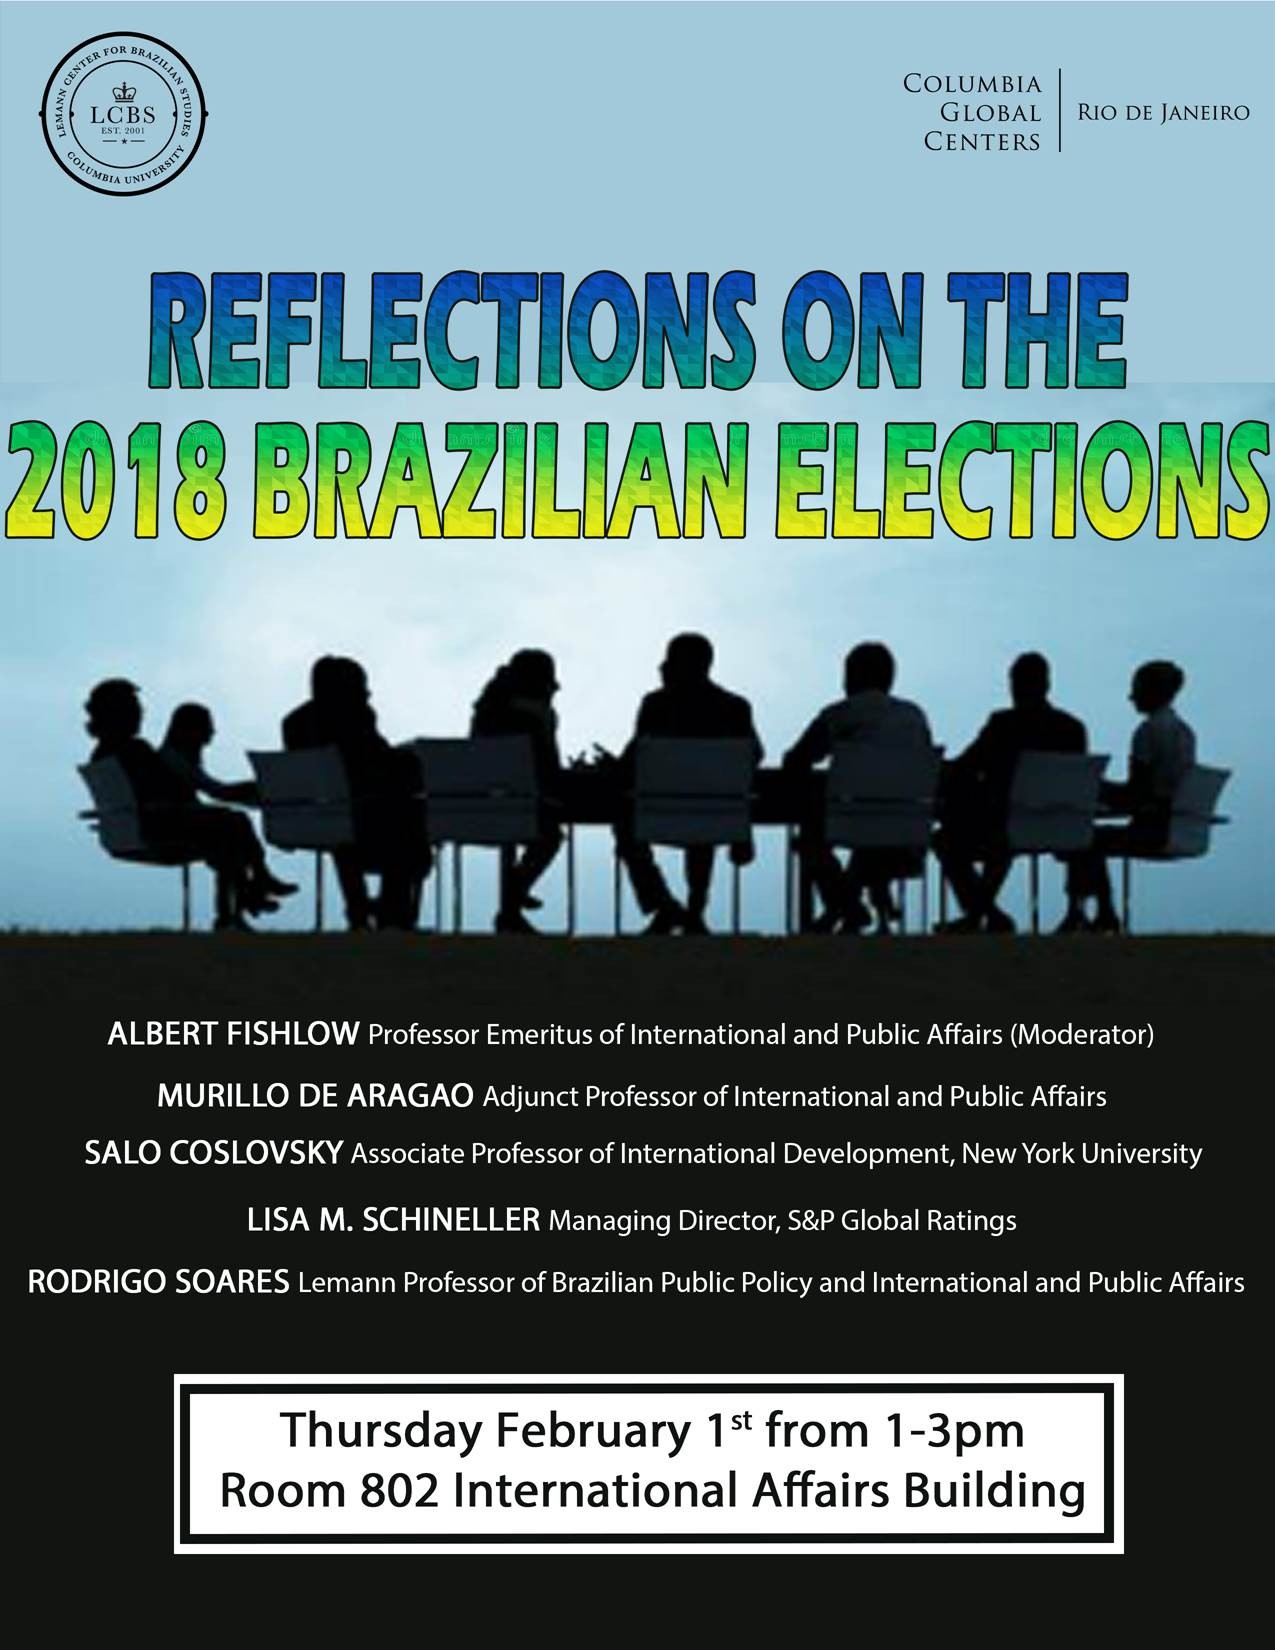 Reflections on the 2018 Brazilian Elections